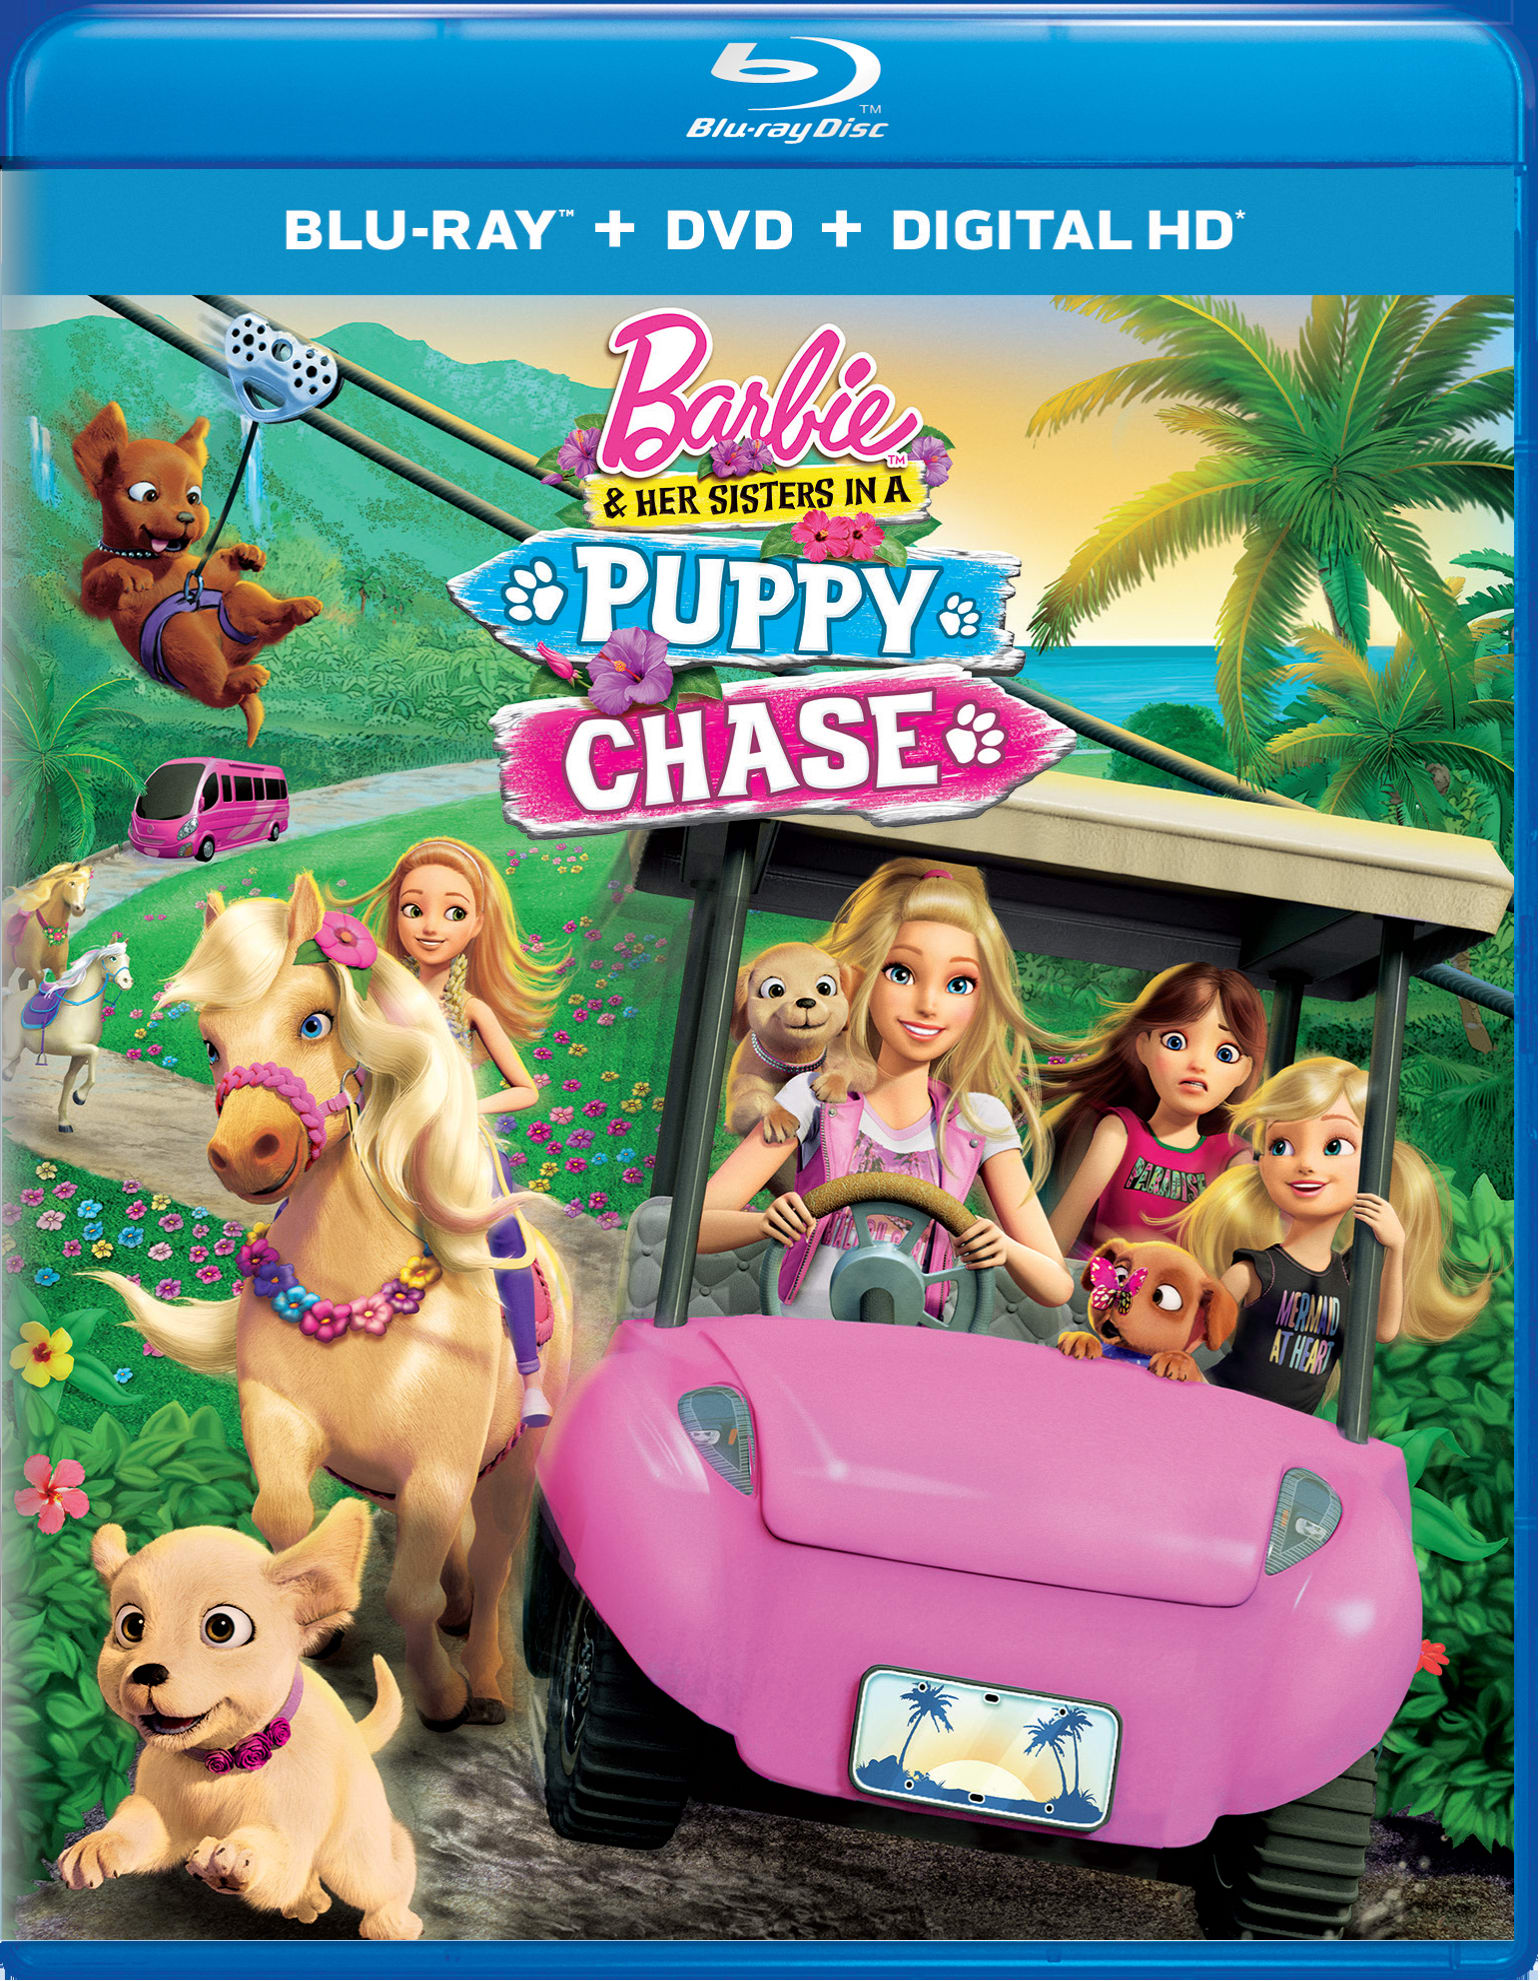 Barbie and Her Sisters in a Puppy Chase (DVD + Digital) [Blu-ray]